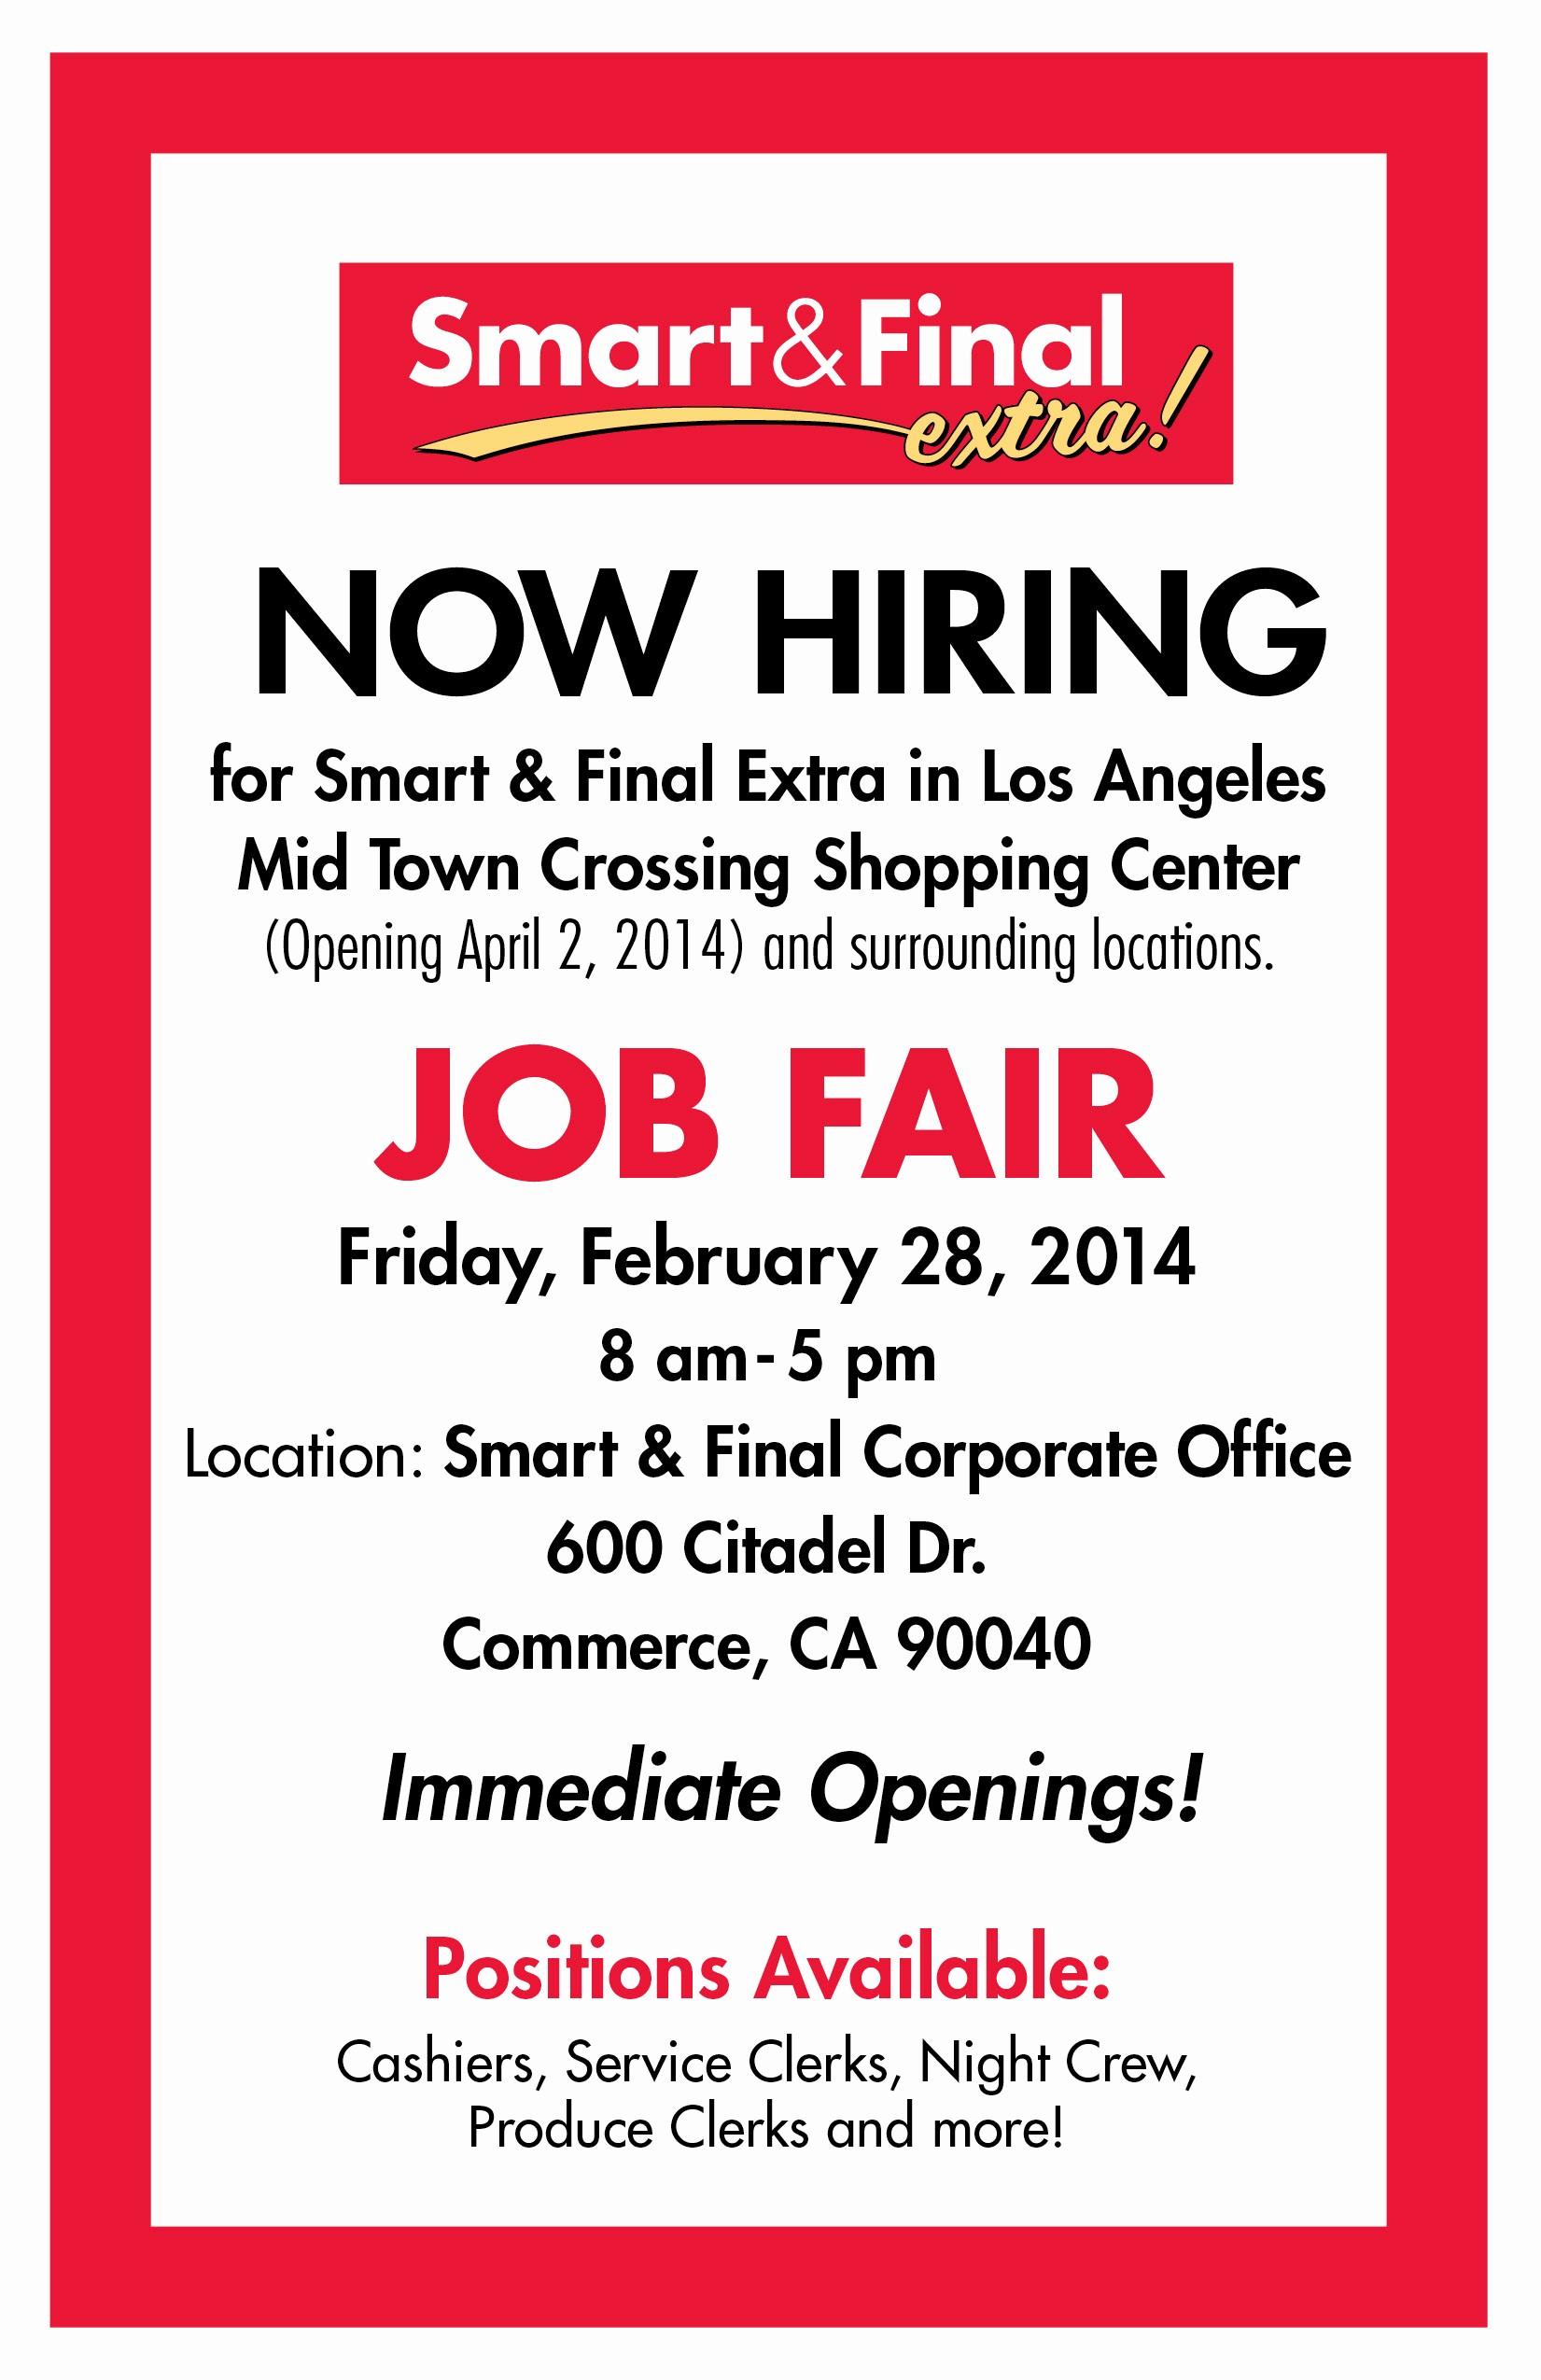 Now Hiring Sign Template Free Beautiful Smart & Final Mid town Crossing – now Hiring – Job Fair